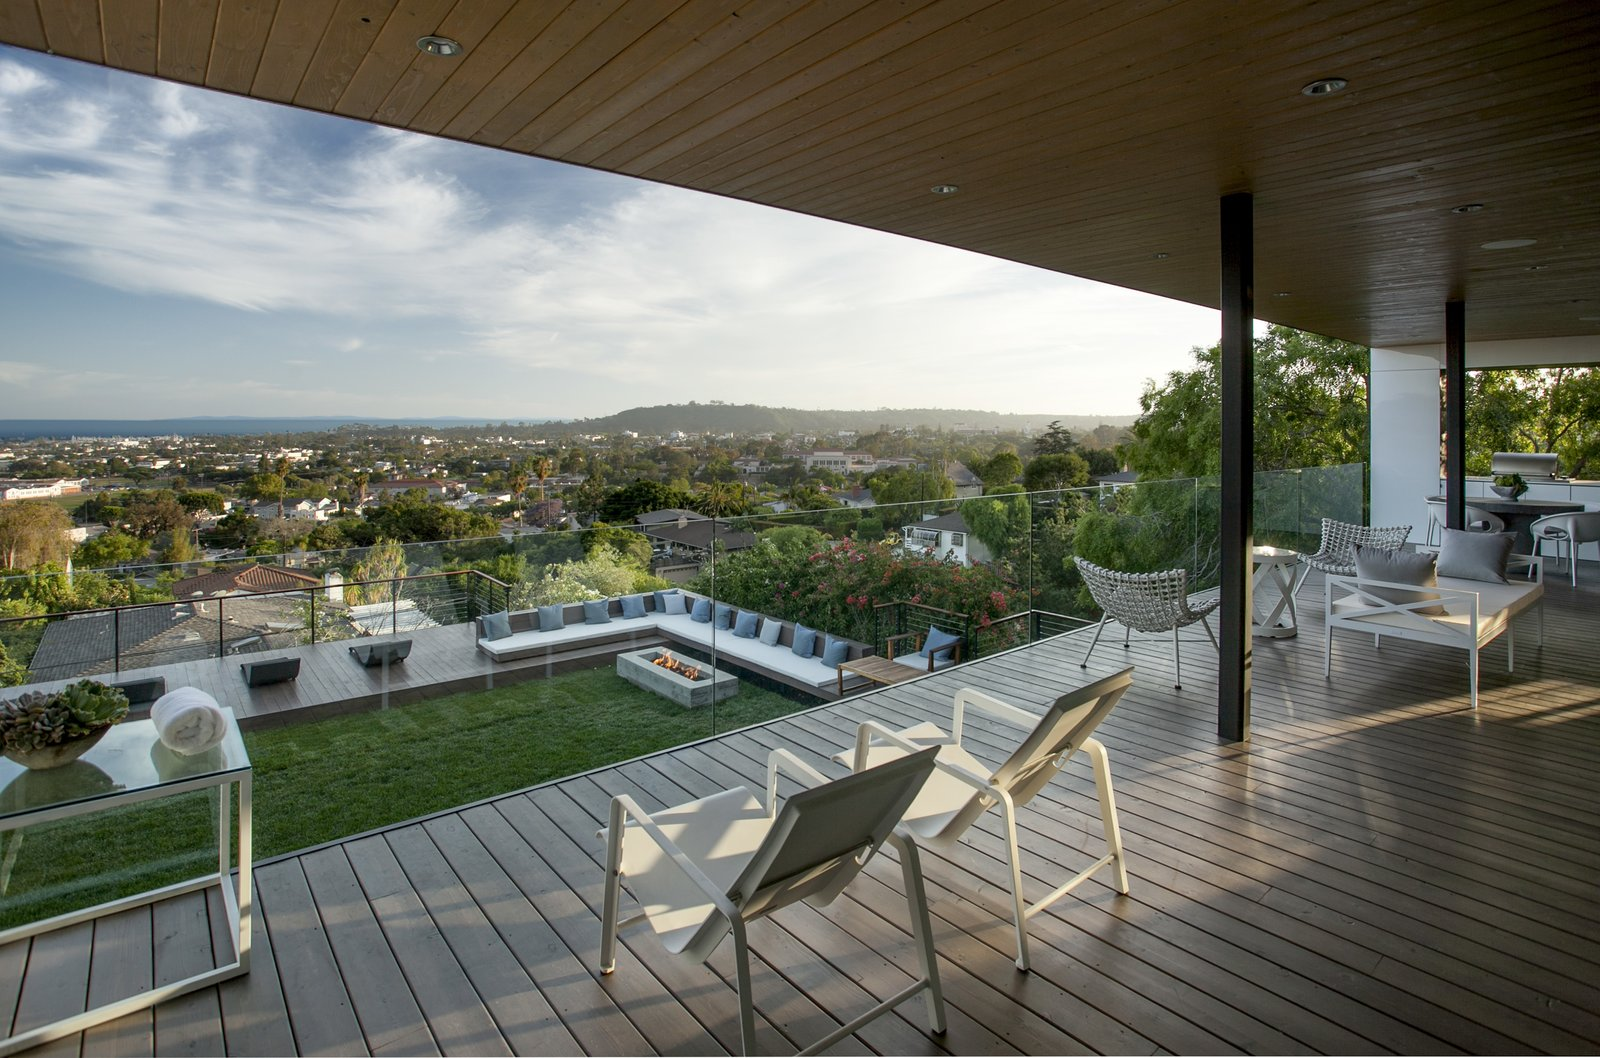 Tagged: Outdoor, Grass, Large Patio, Porch, Deck, and Wood Patio, Porch, Deck.  Paseo Ferrelo by ANACAPA